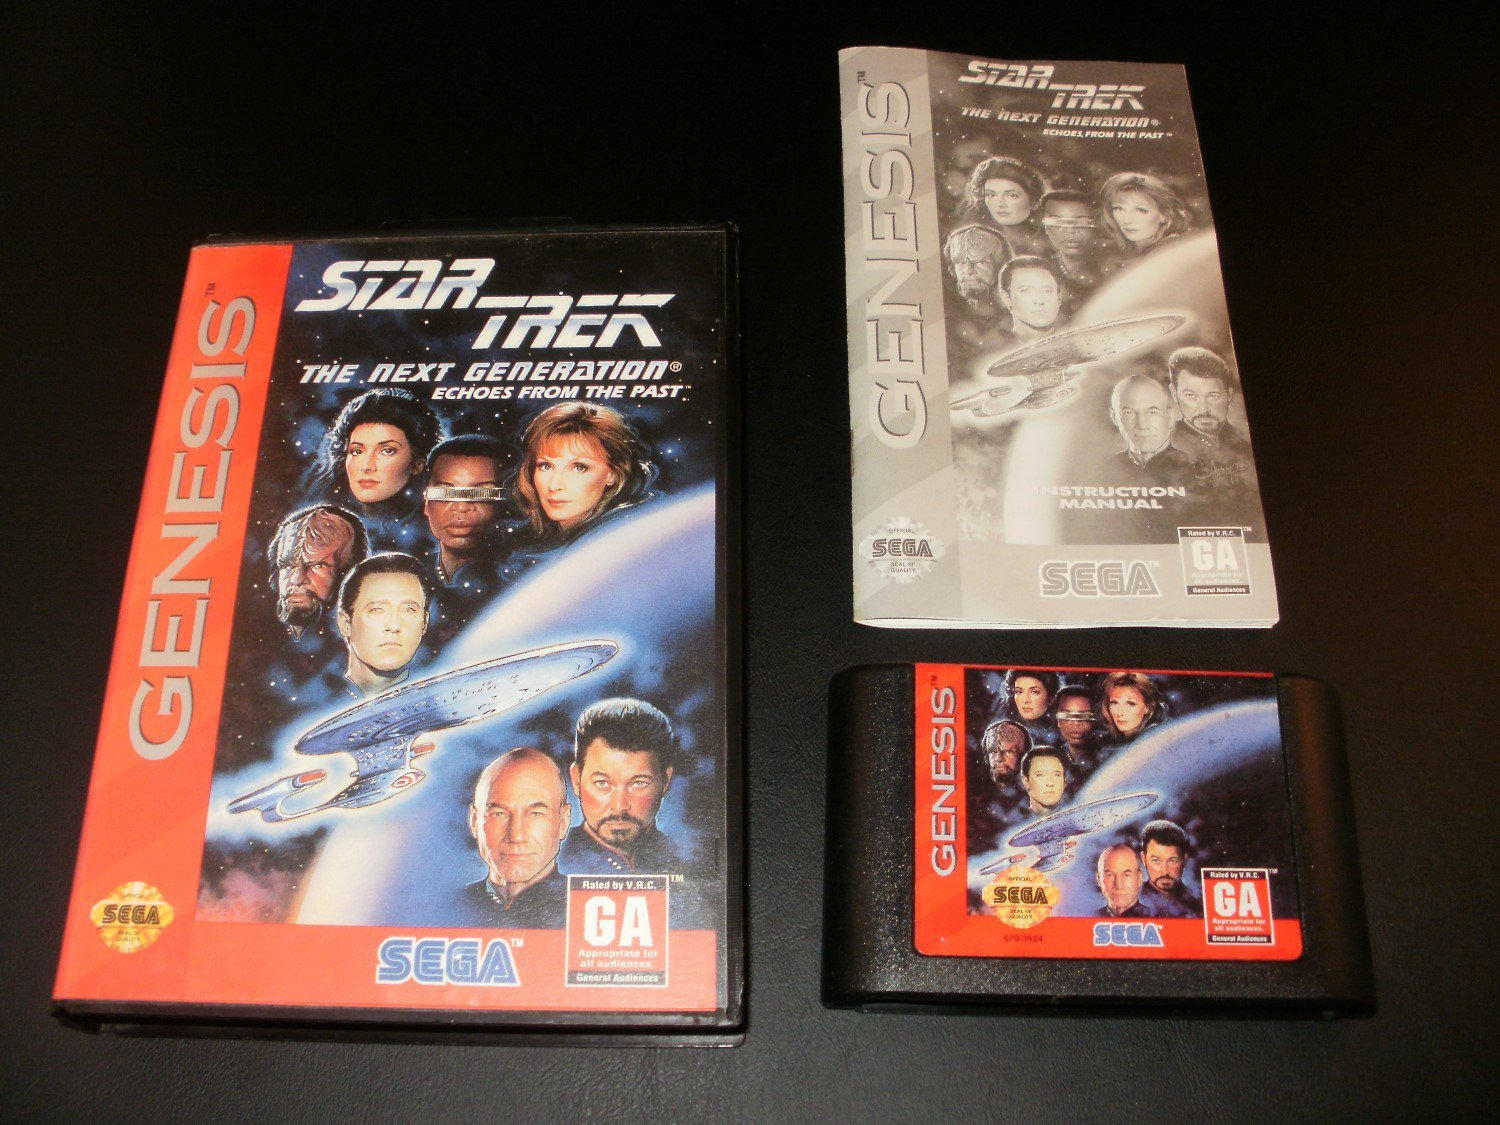 Star Trek The Next Generation - Sega Genesis - Complete CIB